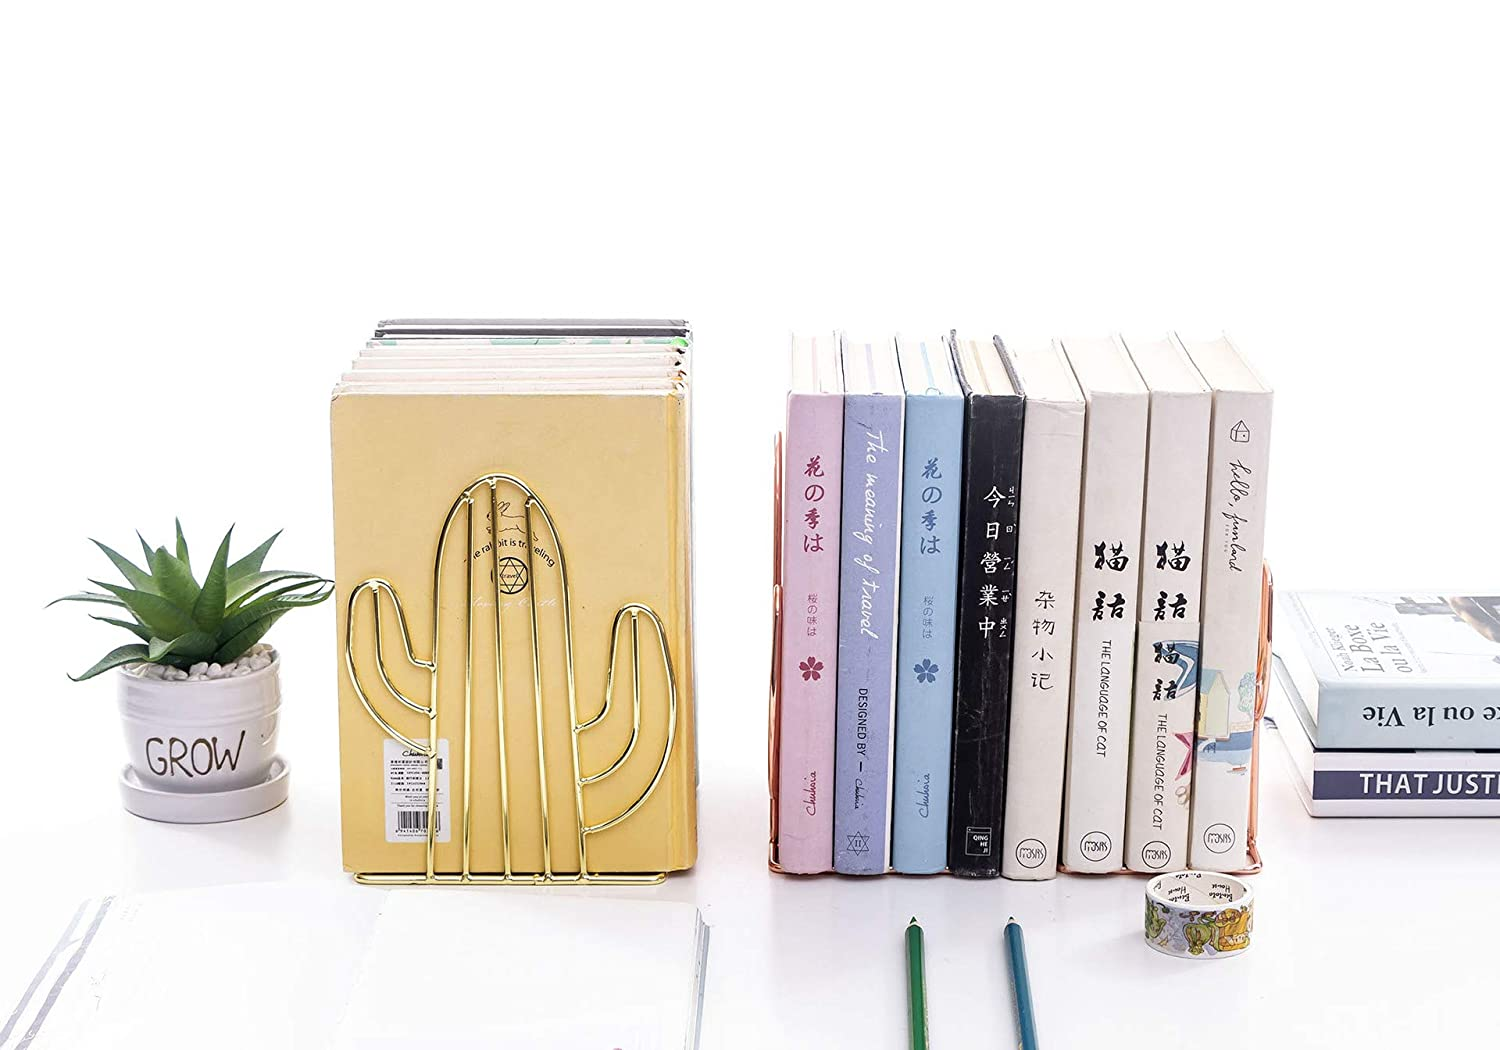 Chris.W 1 Pair Wire Gold Bookends Decorative Metal Book Ends Supports Dividers for Shelves Unique Cactus Design